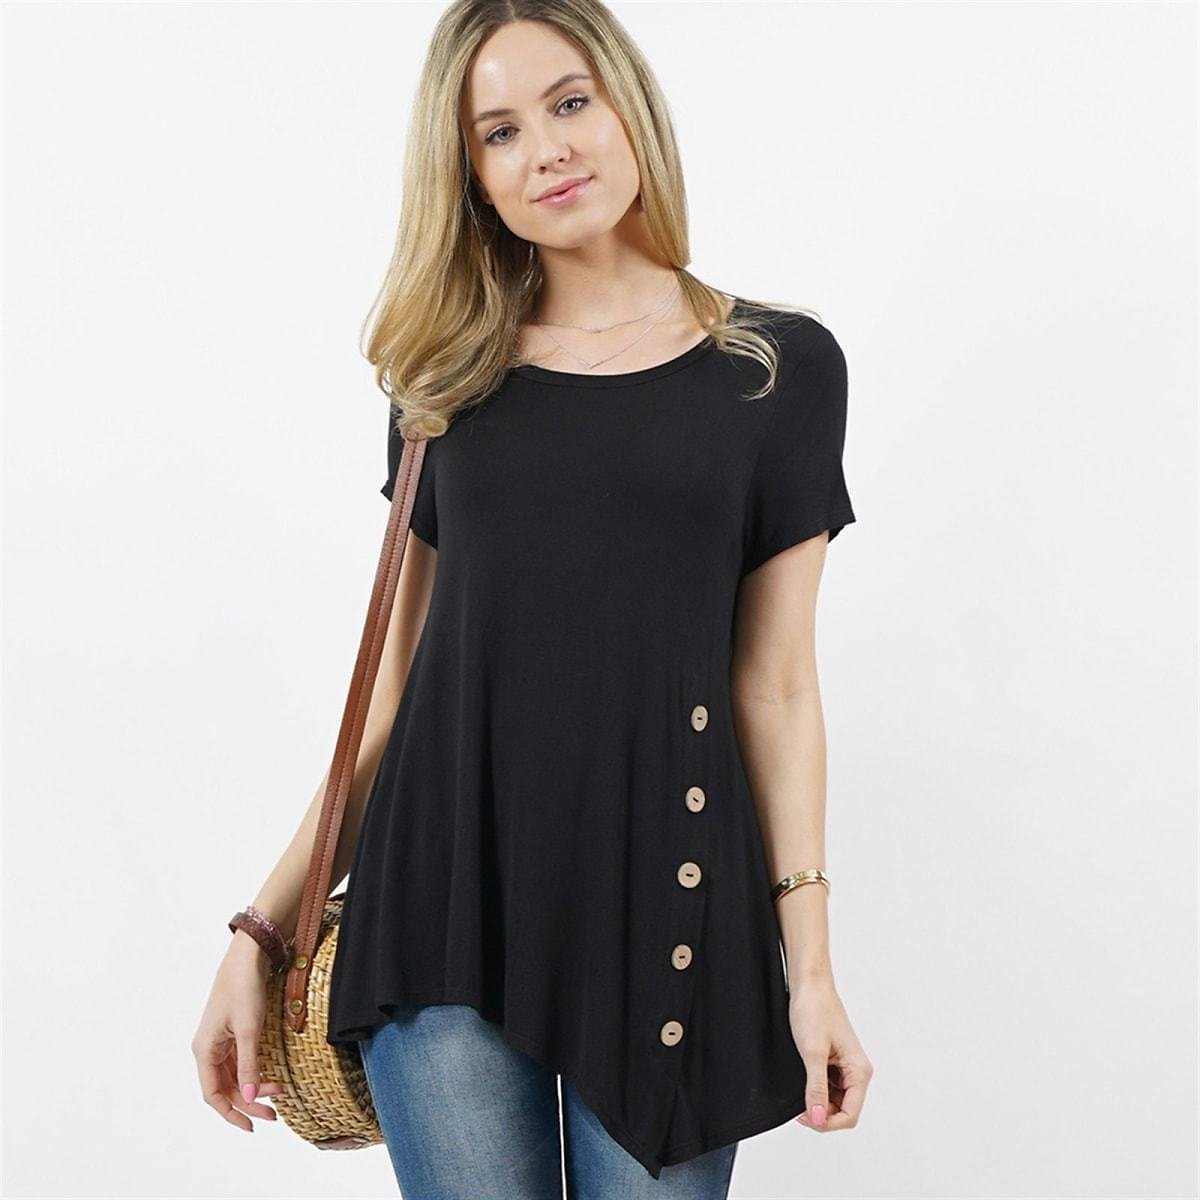 55% Off Short Sleeve Asymmetrical Side Button Tunic (Mult. Colors) + F/S